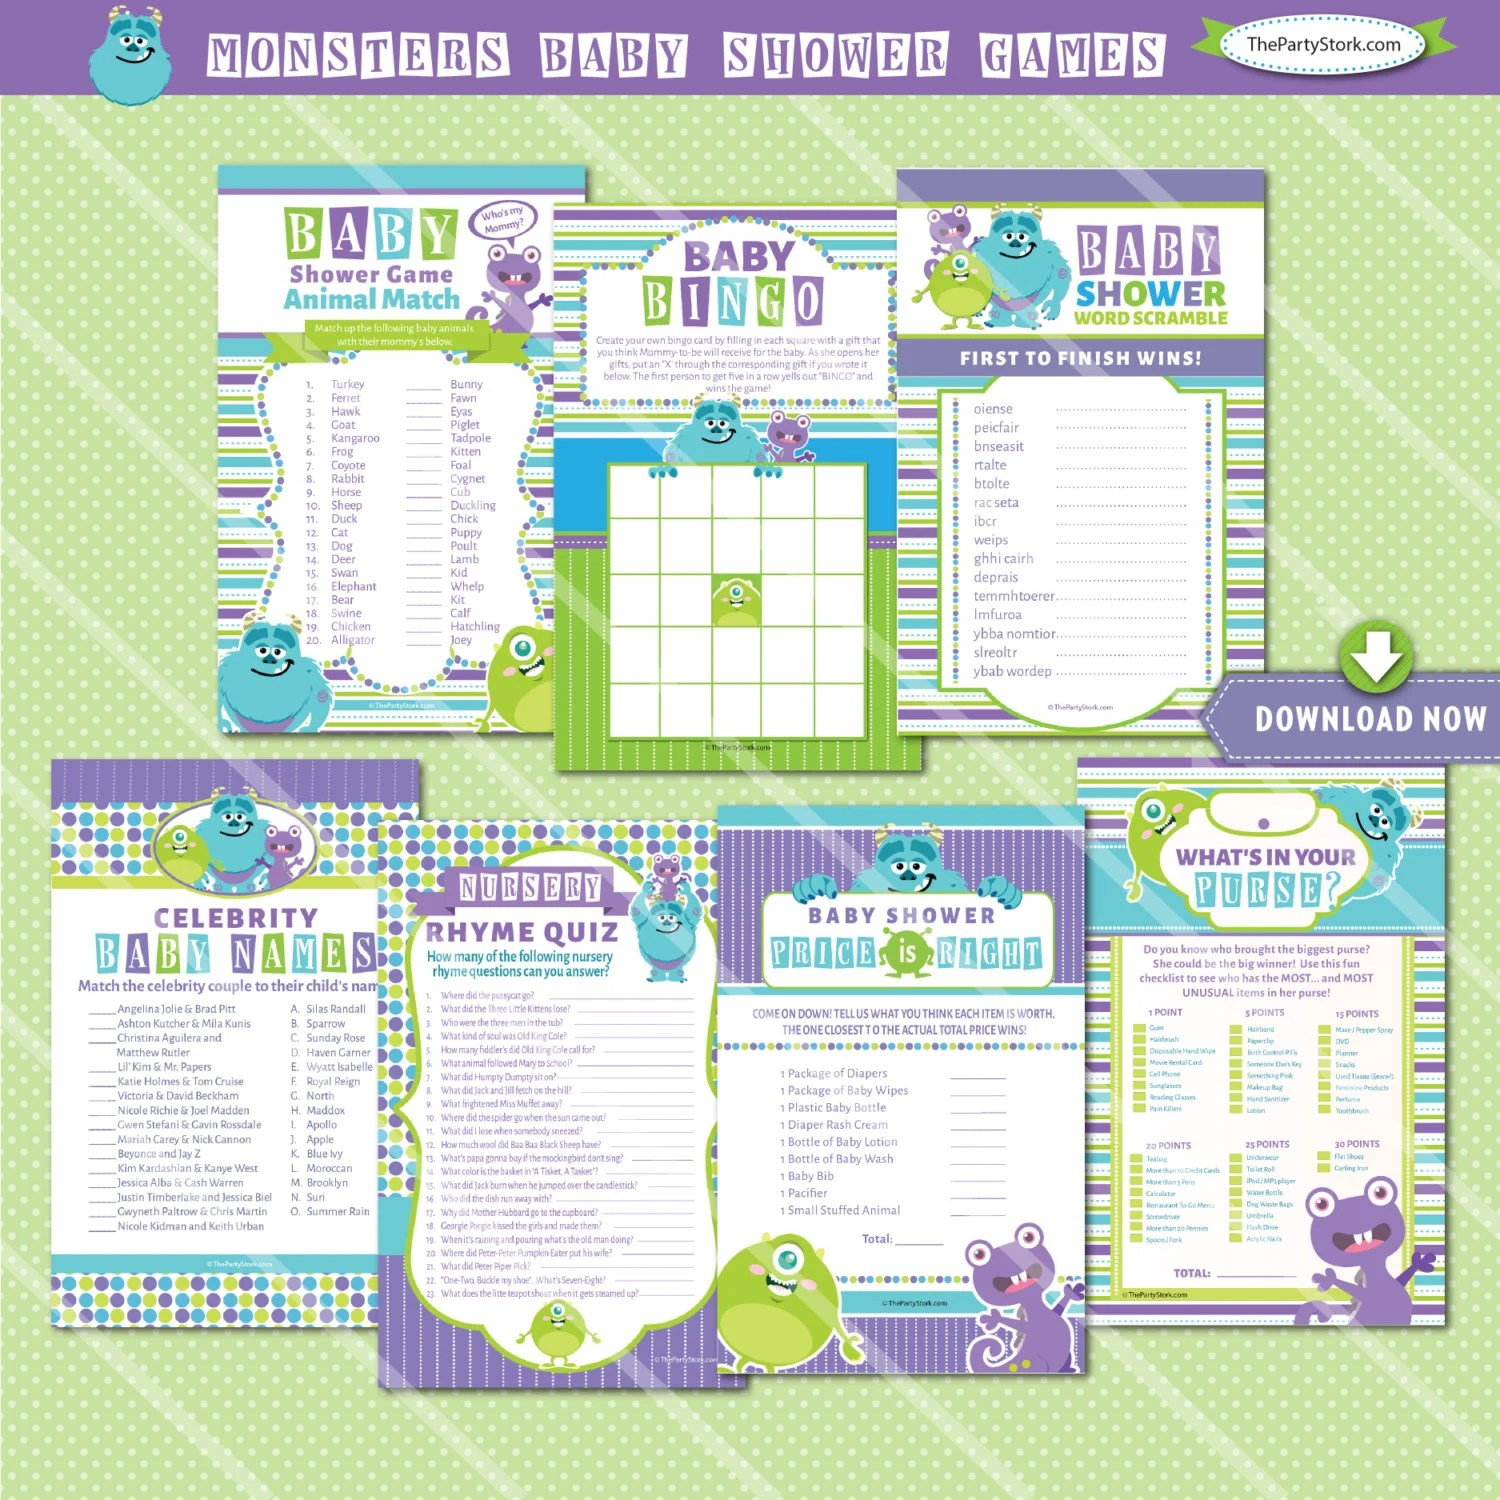 Monsters Inc Baby Shower Games Printables Monster Baby